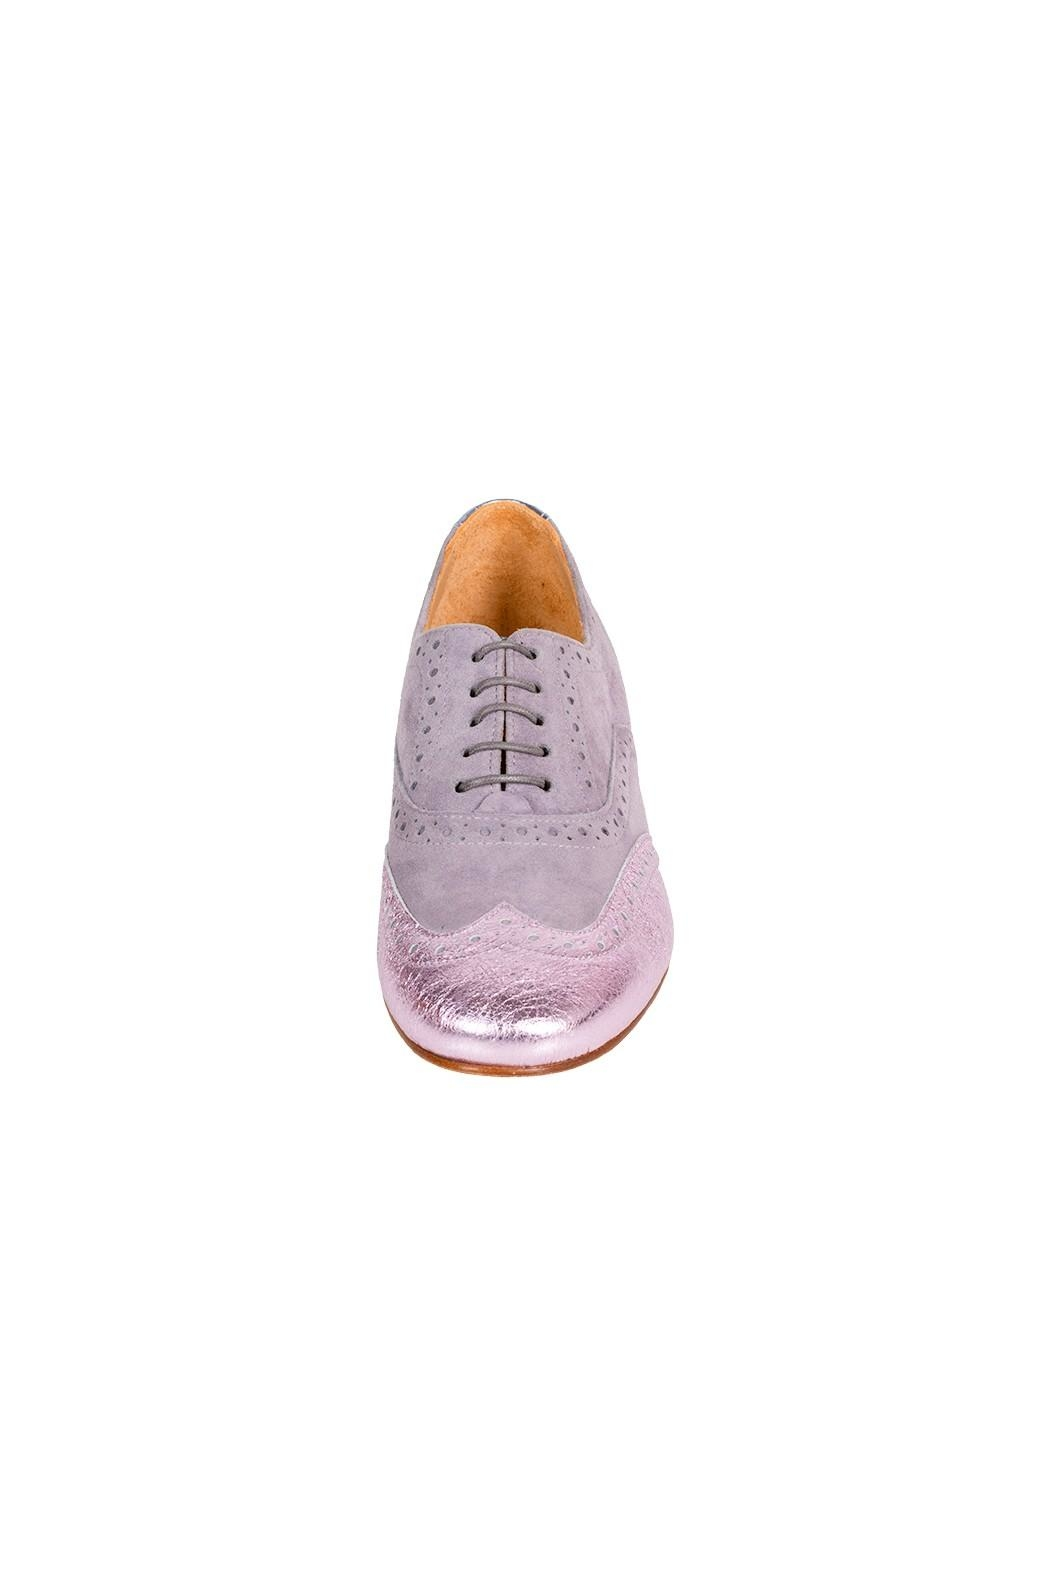 Pascucci Lilac-Leather Flat Brogue - Side Cropped Image